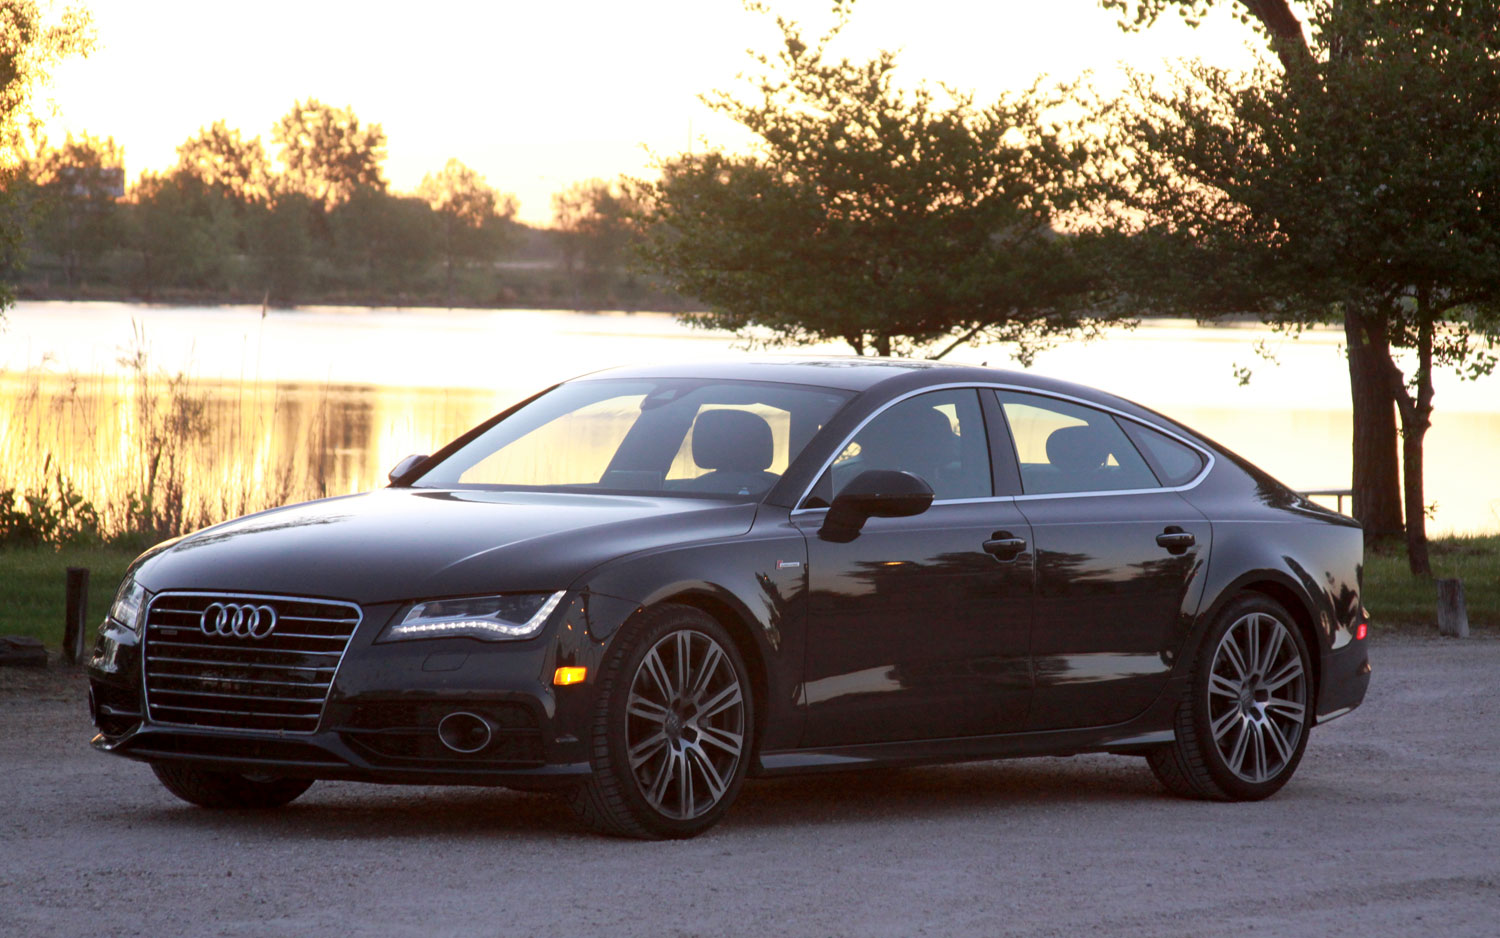 2012 Audi A7 Front Three Quarter Sunset1